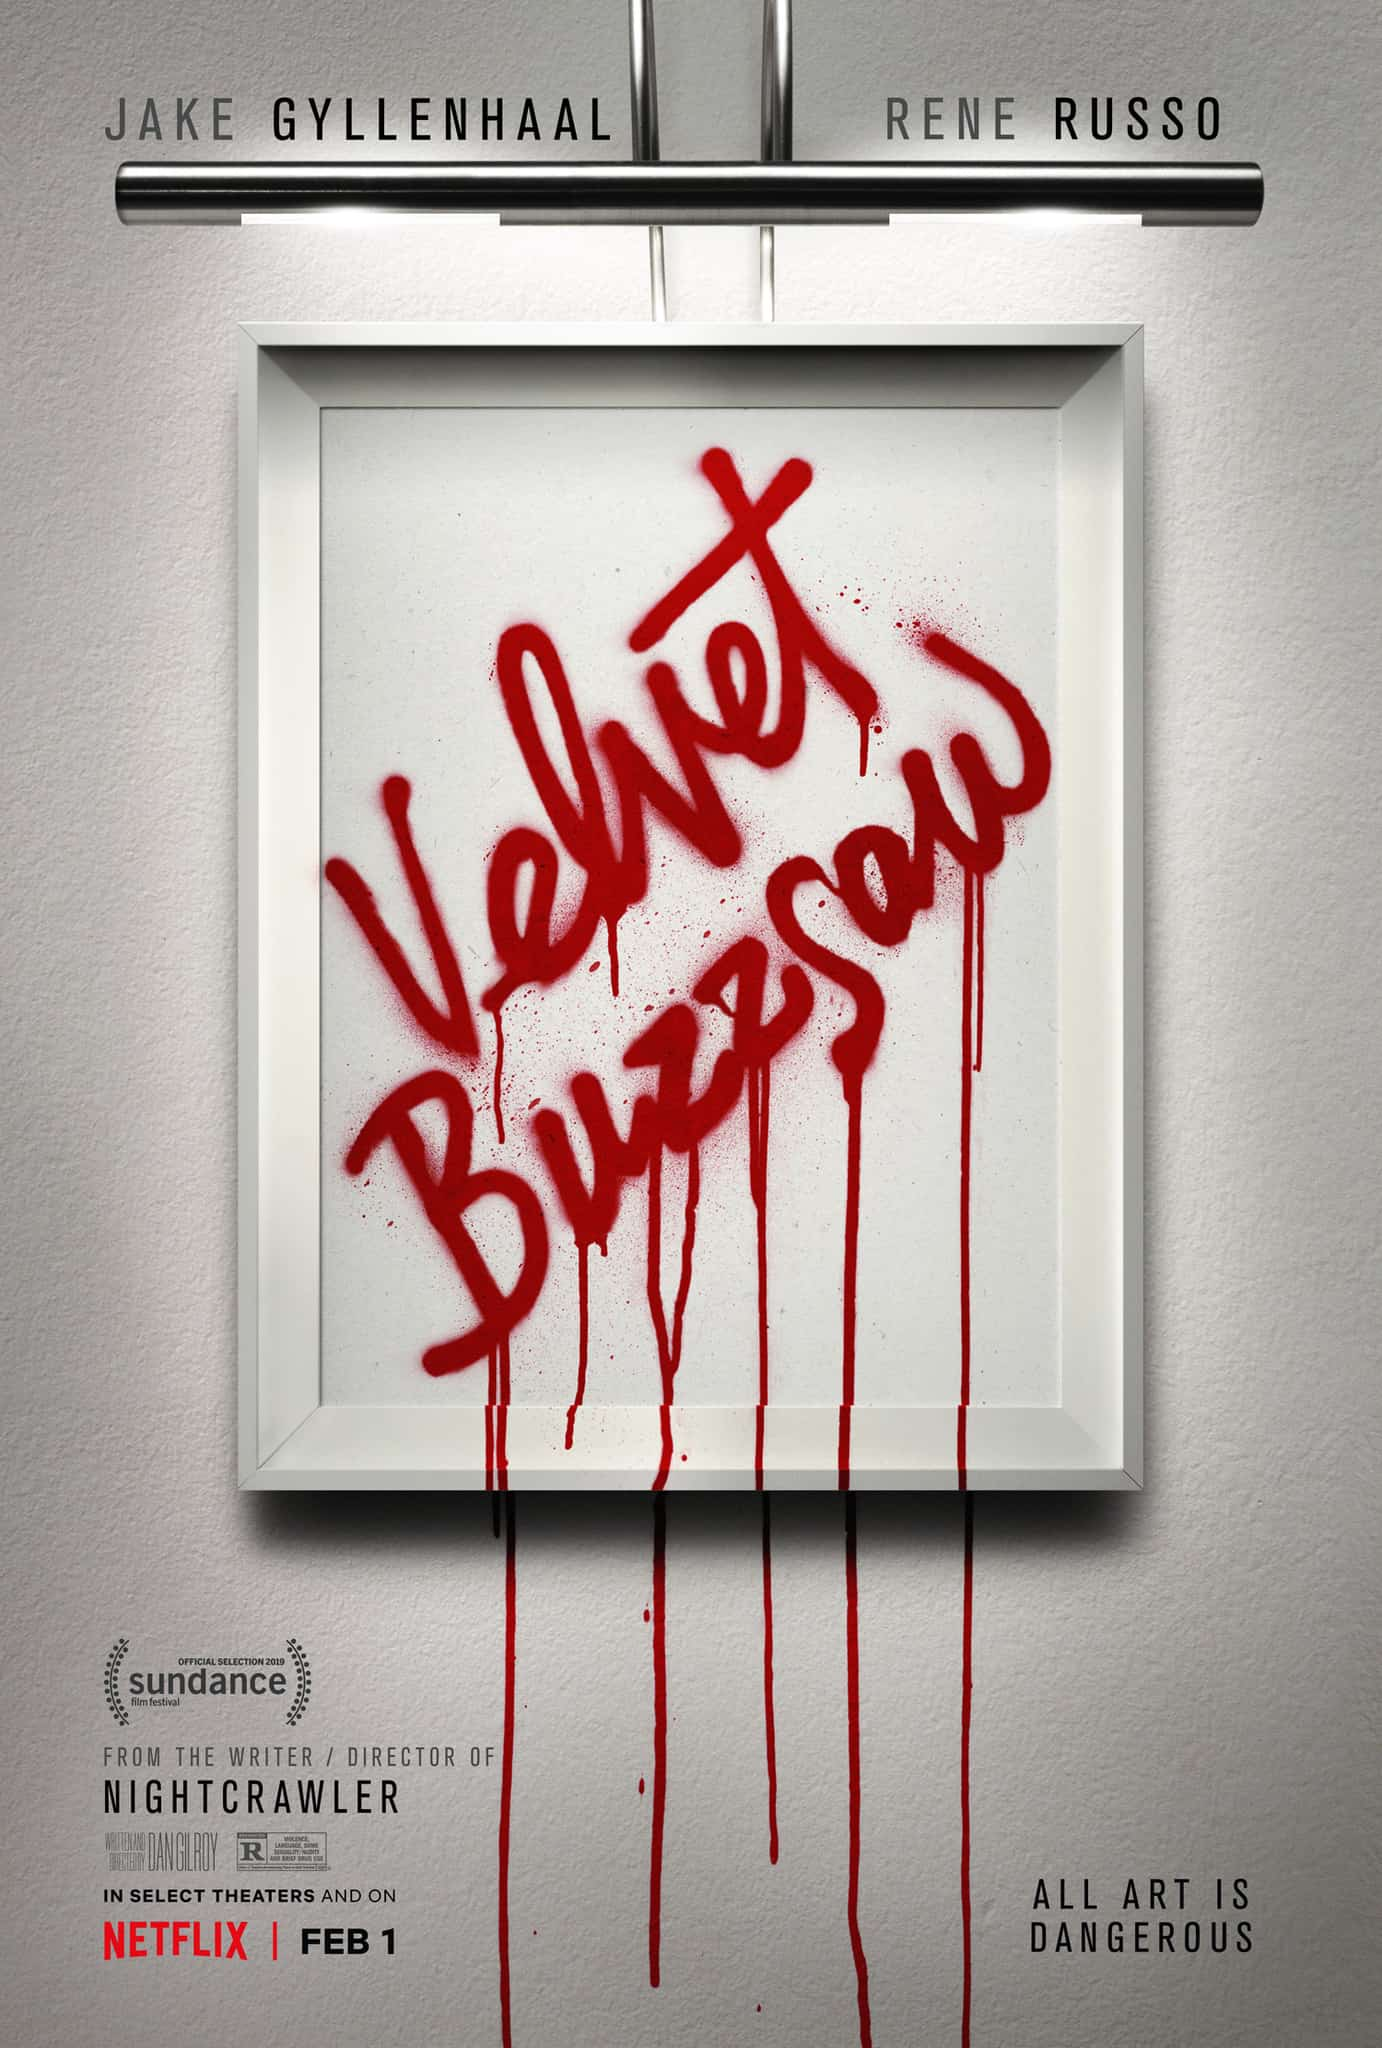 Mike's Review: Velvet Buzzsaw (2019)